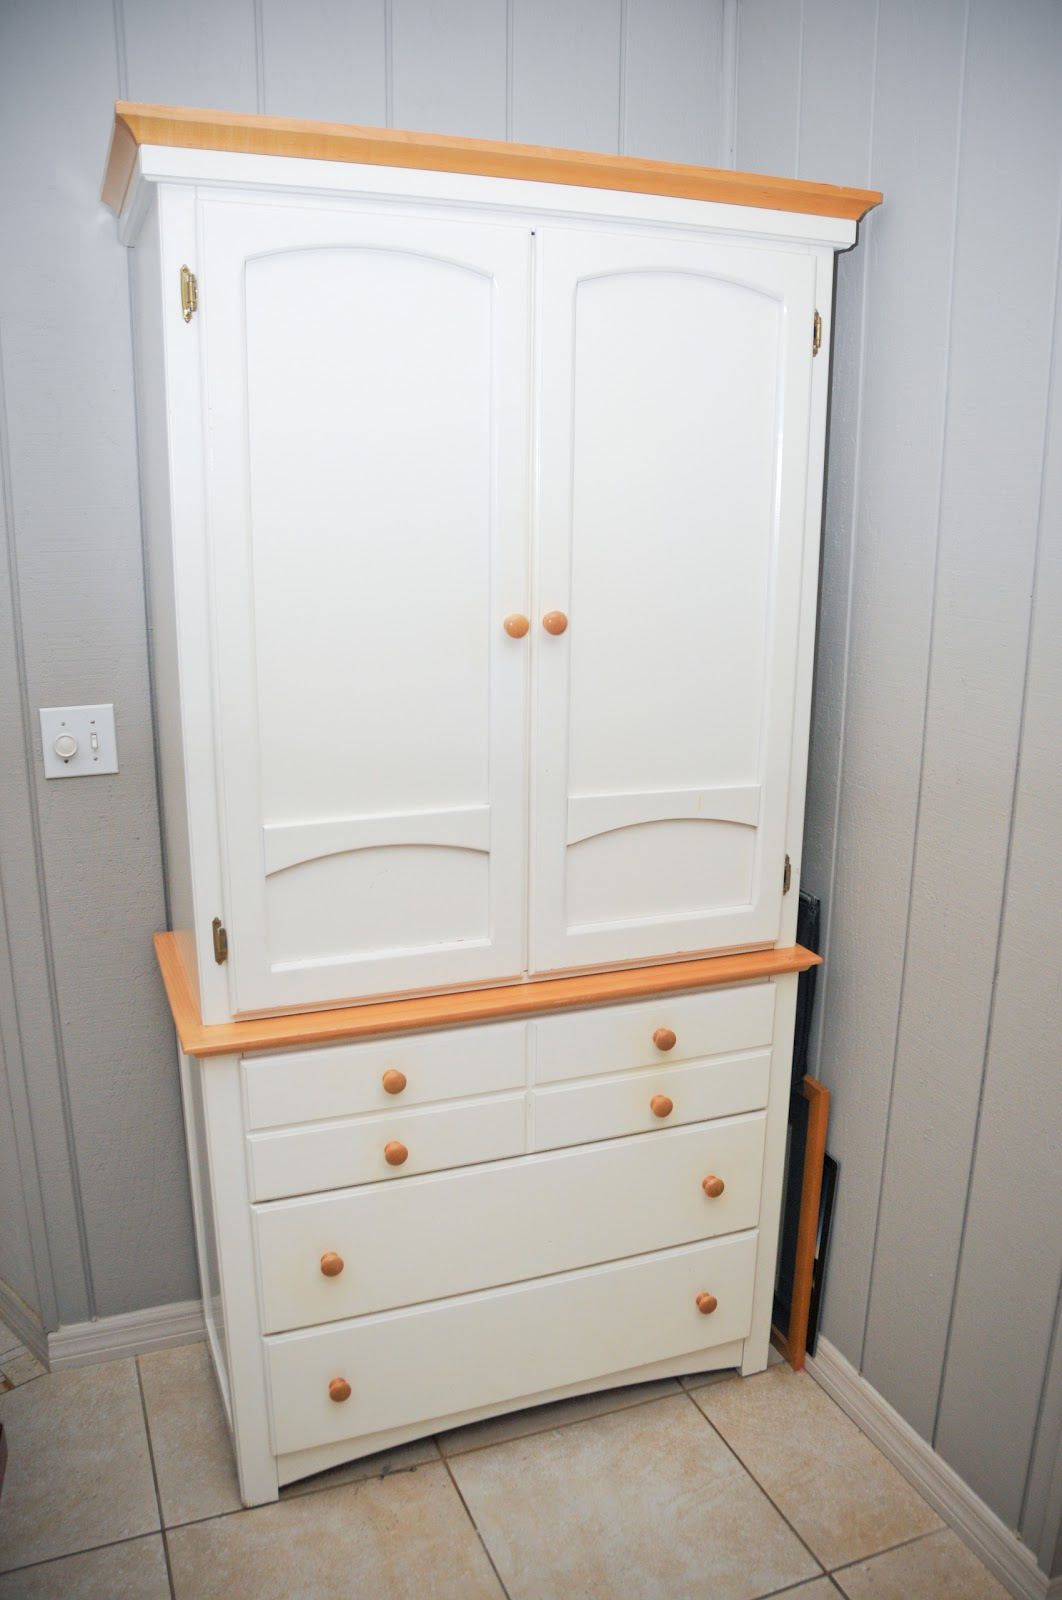 sarasota craigslist things for sale white wood dresser. Black Bedroom Furniture Sets. Home Design Ideas